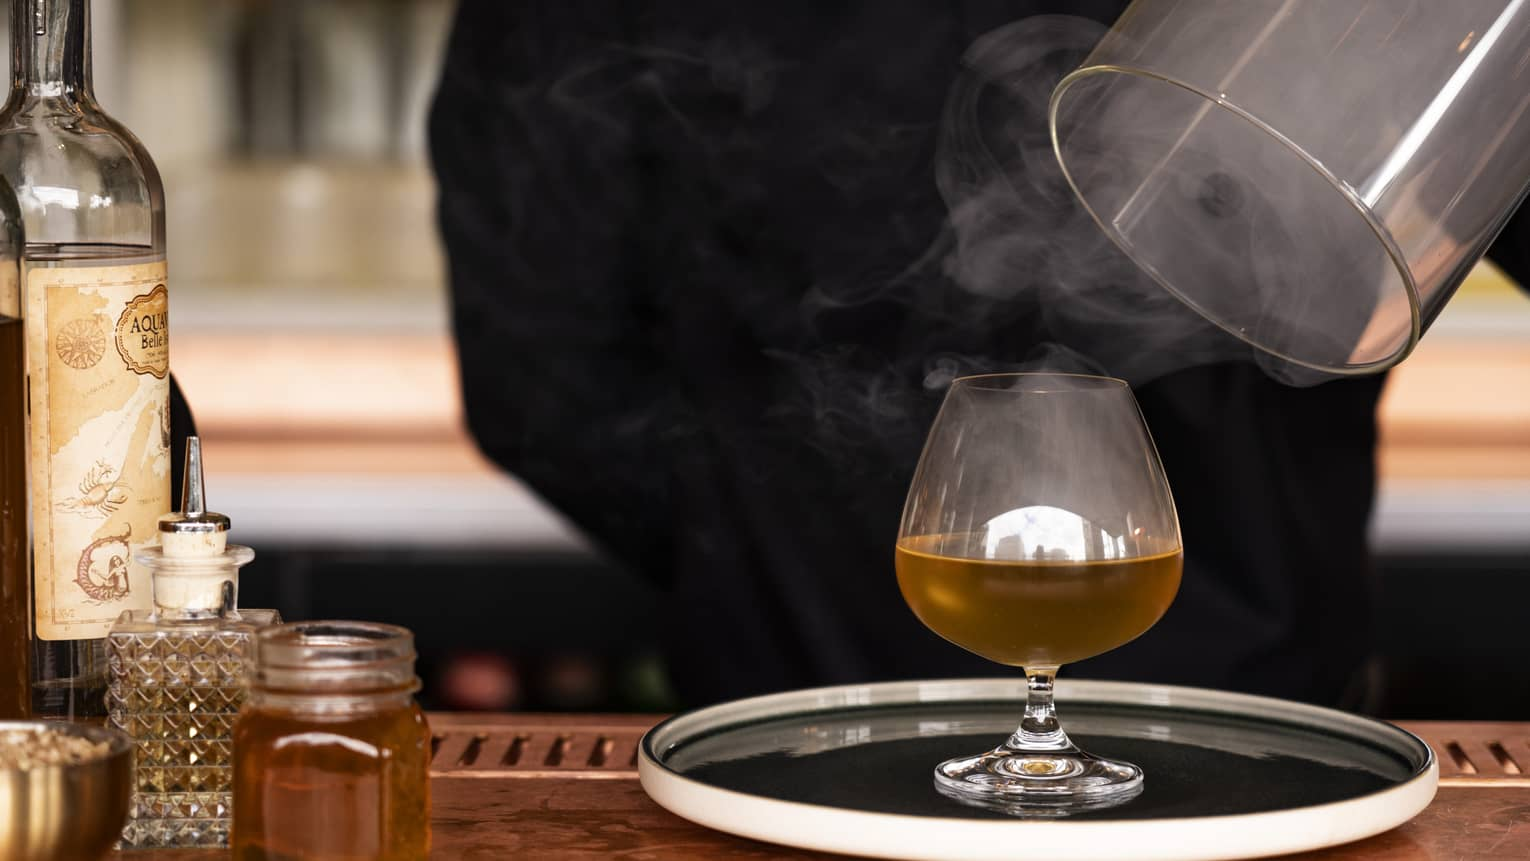 Bartender lifts cover from platter with steaming Old Gods Cocktail